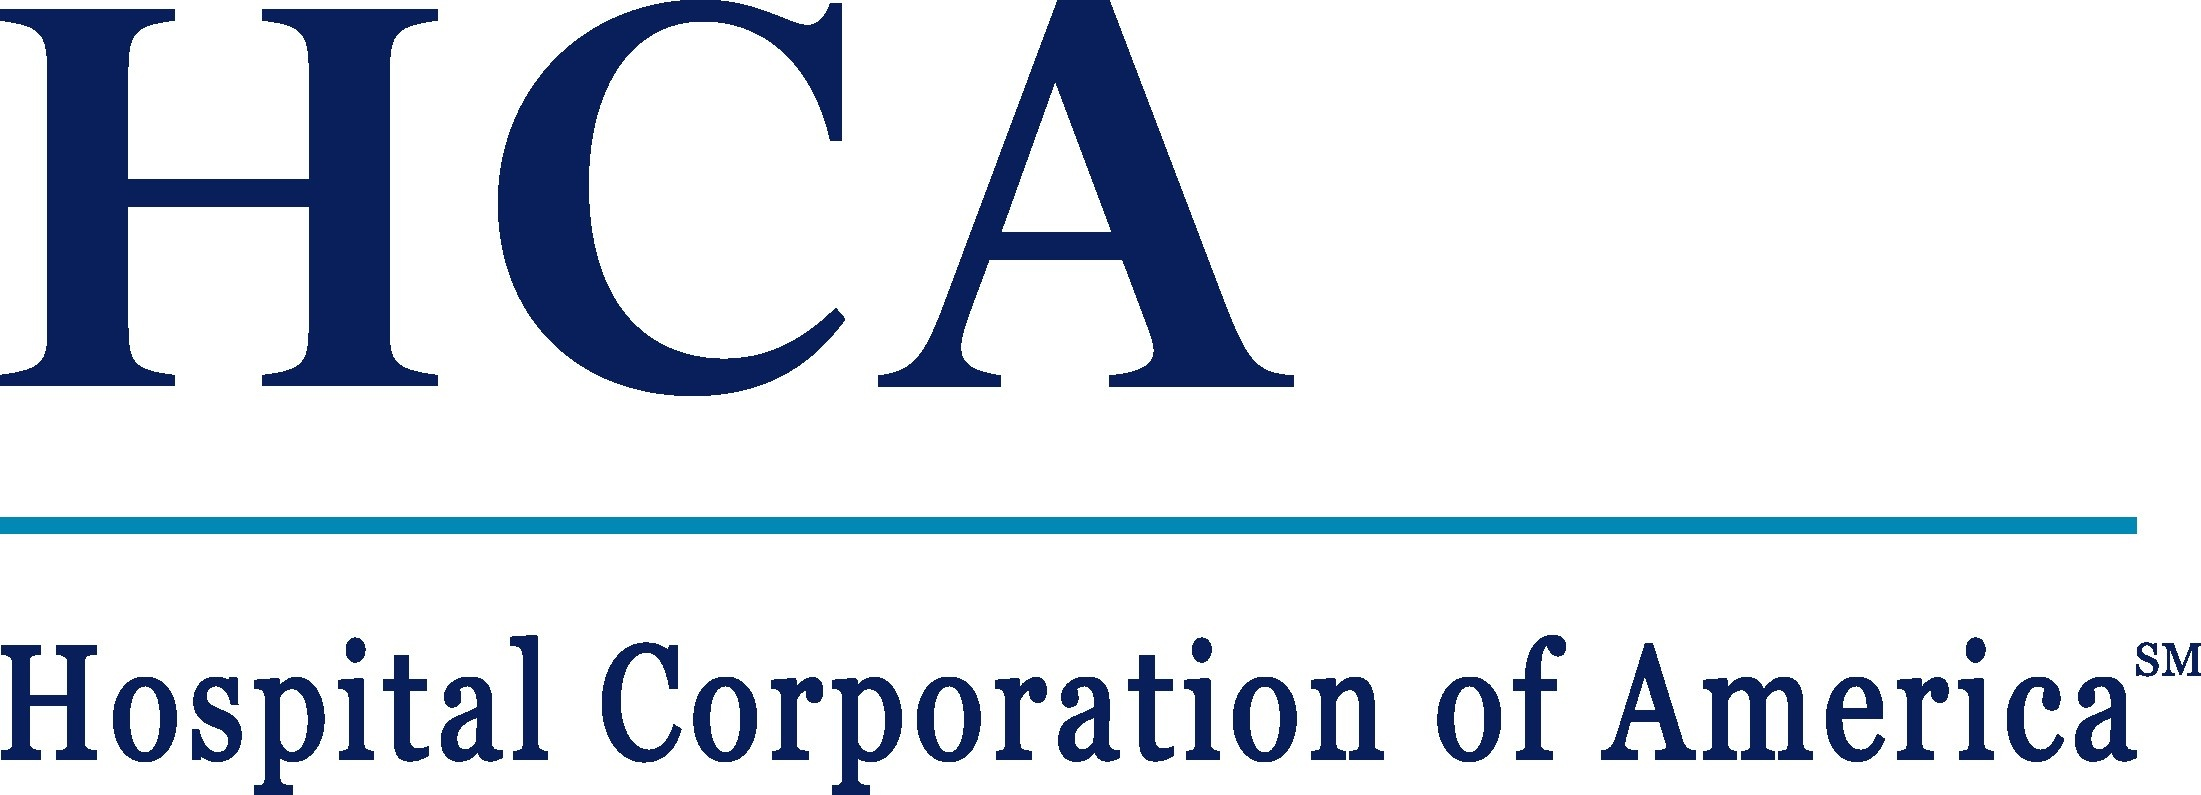 hospital corporation of america Free research that covers abstract hospital corporation of america (hca) is a deep-rooted, worldwide health care industry leader that, on two continents, offers patient services hca, ra.